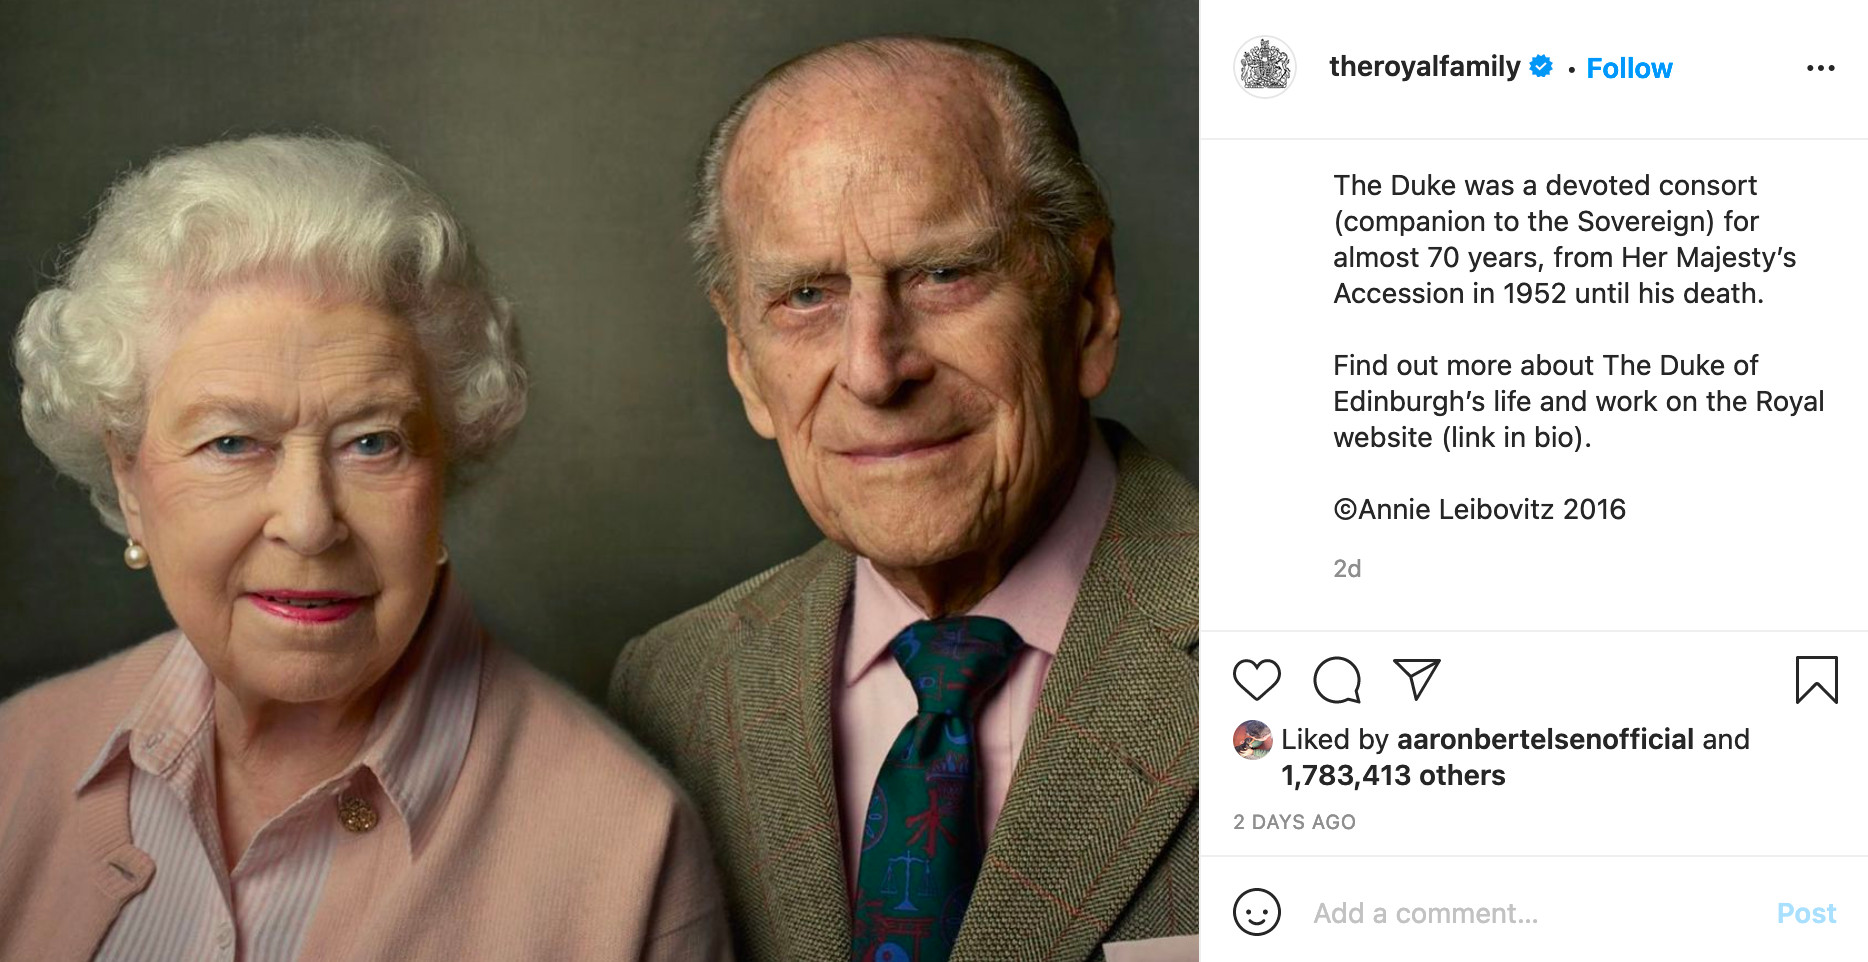 The Royal Family marks Prince Philip's passing with an Annie Leibovitz portrait